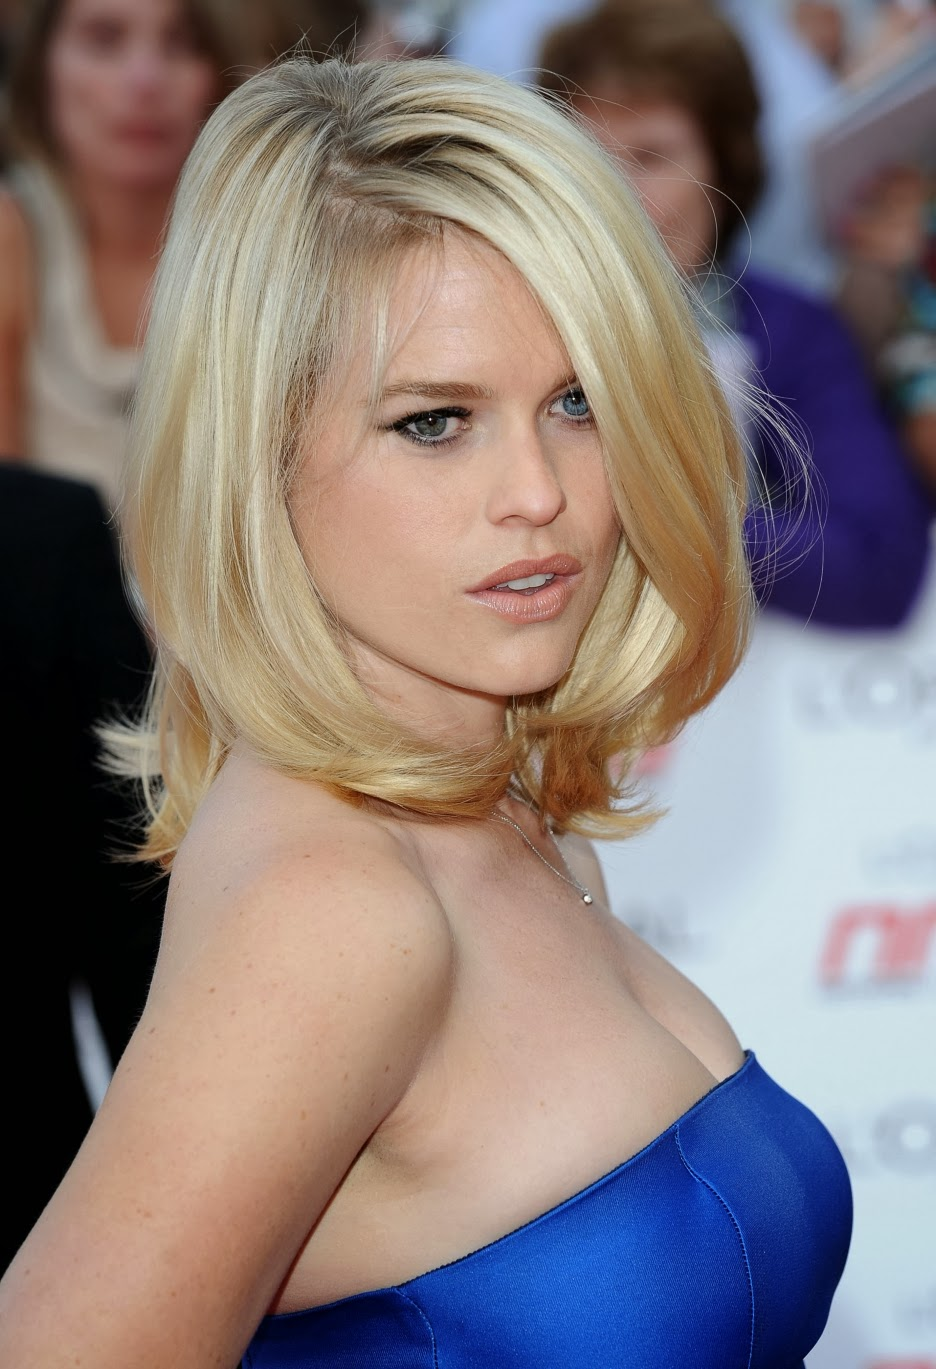 Latest Celebrity Photos Alice Eve Sexy And Hot Wallpapers